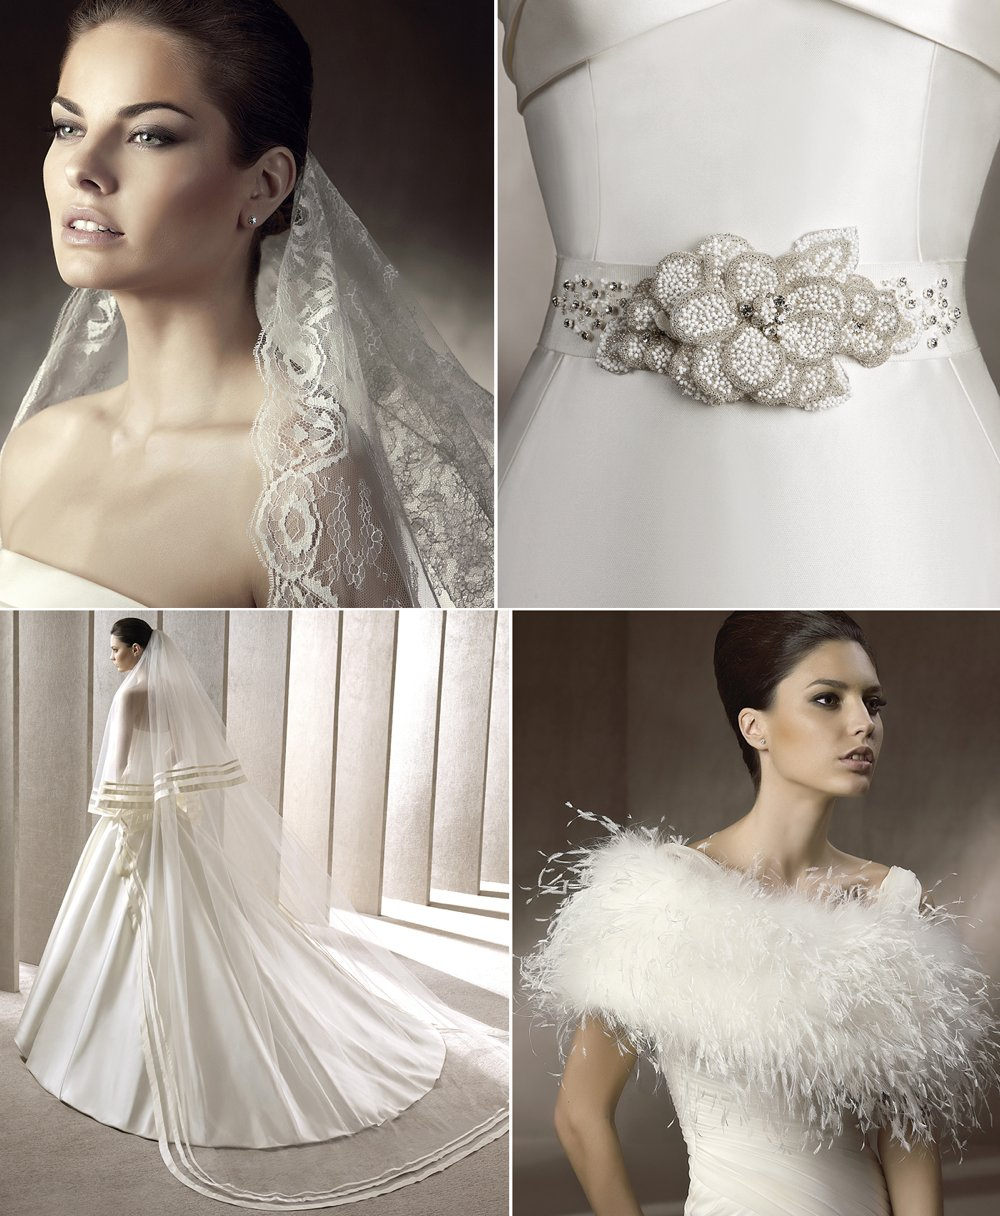 accessories for wedding dress wedding dress accessories Bridal Hair Accessories And Wedding Dress Sashes By Ovias